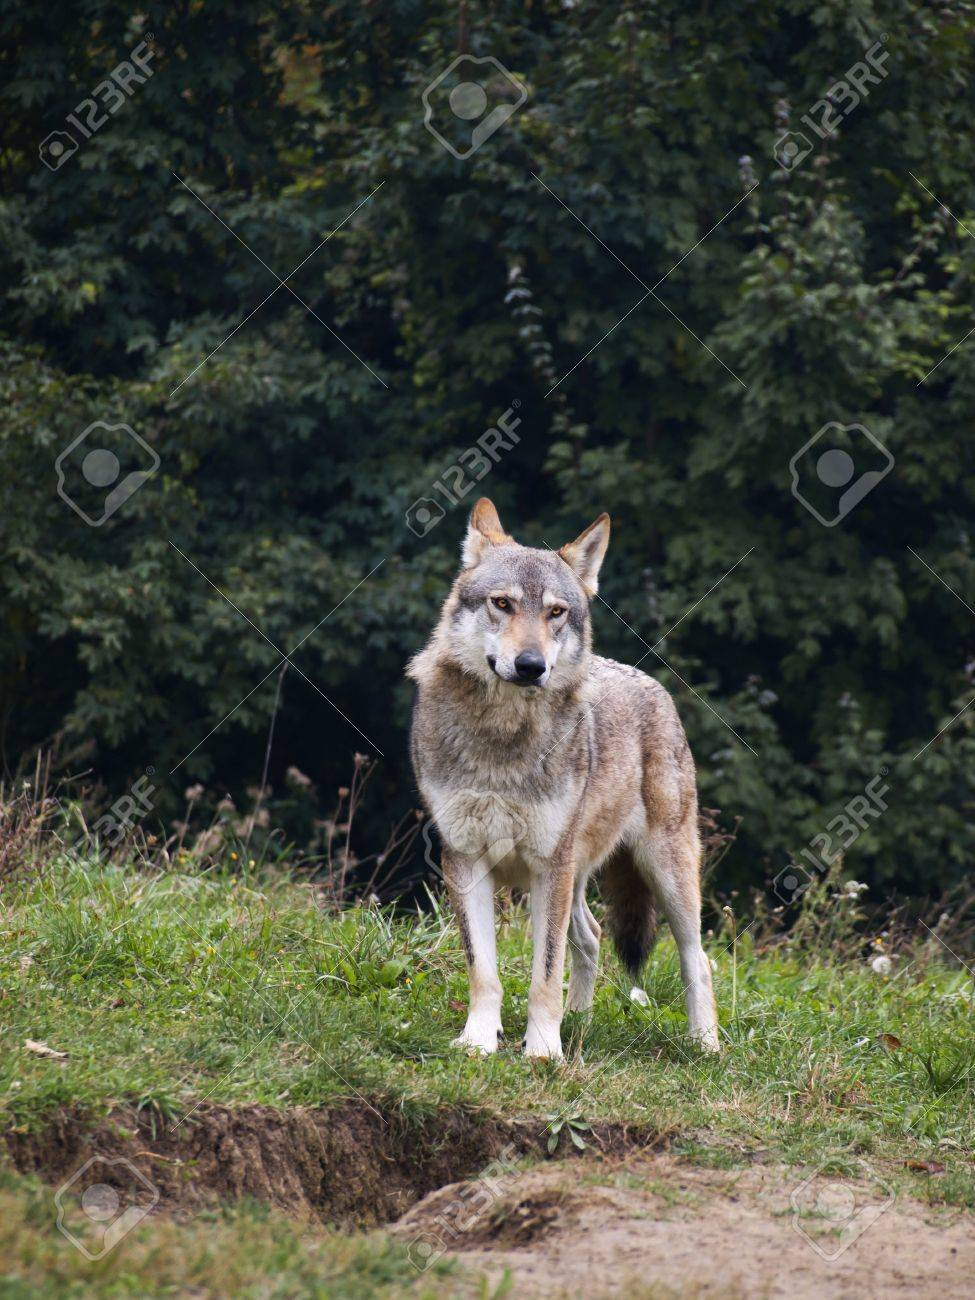 Wolf of serbia - 12120846